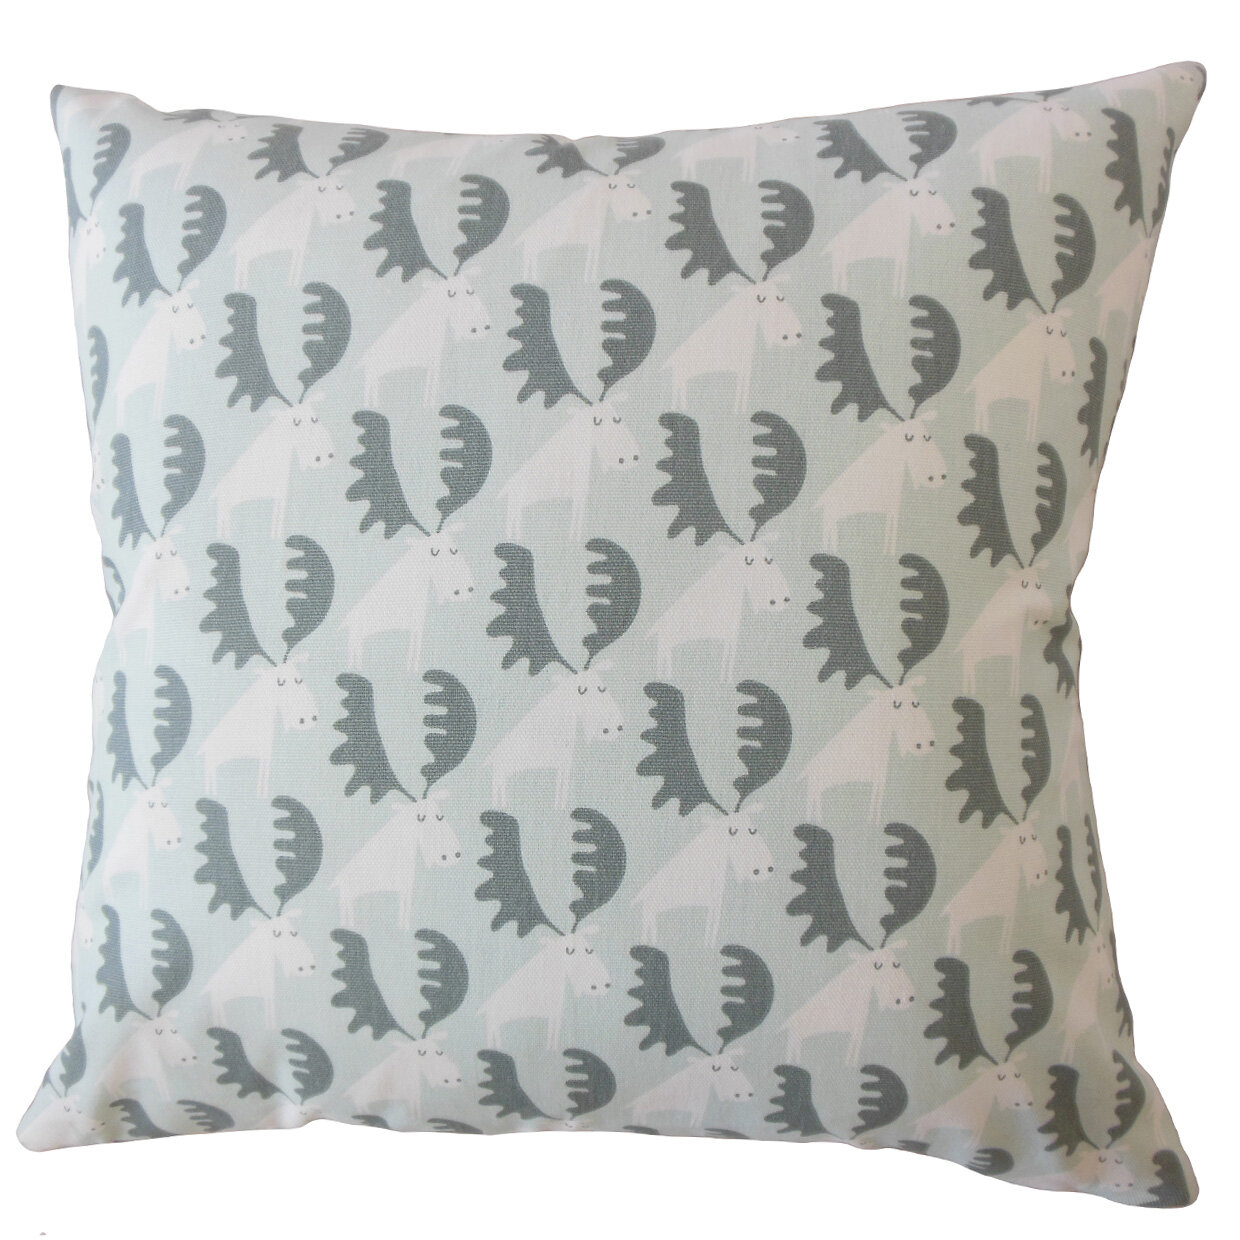 Down Feather Harriet Bee Throw Pillows You Ll Love In 2021 Wayfair